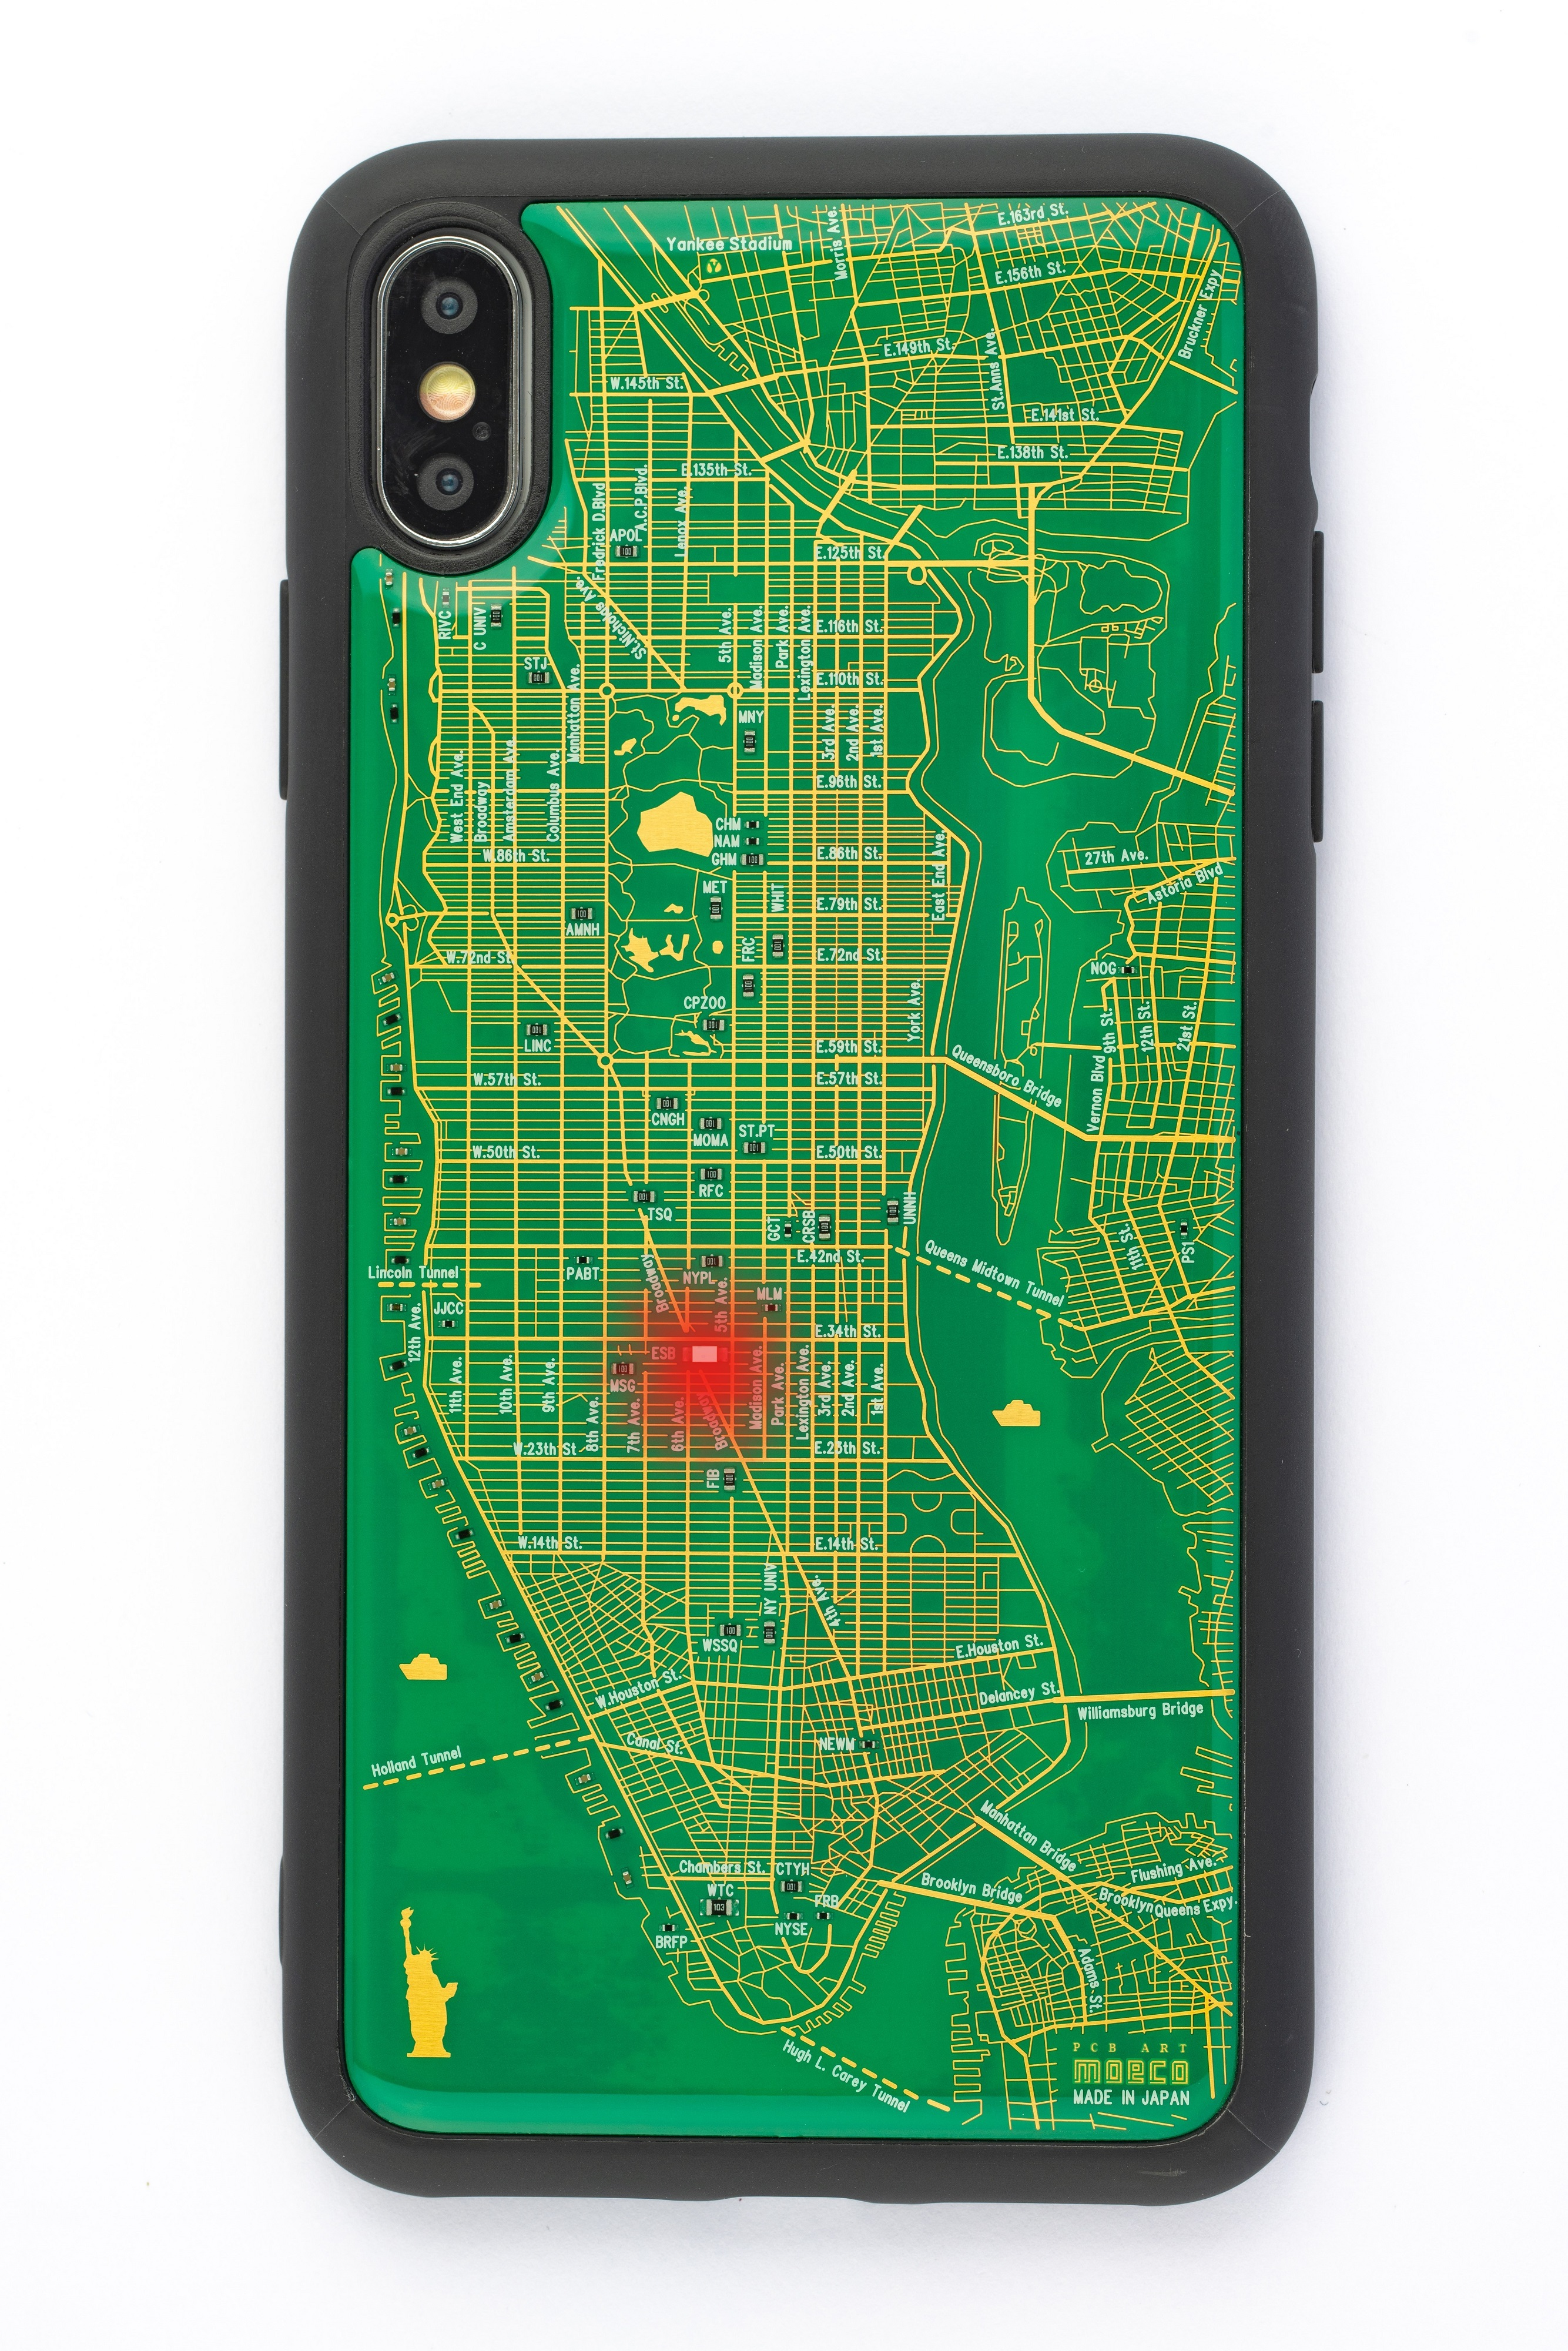 FLASH NY回路地図 iPhone XS Maxケース 緑【東京回路線図A5クリアファイルをプレゼント】